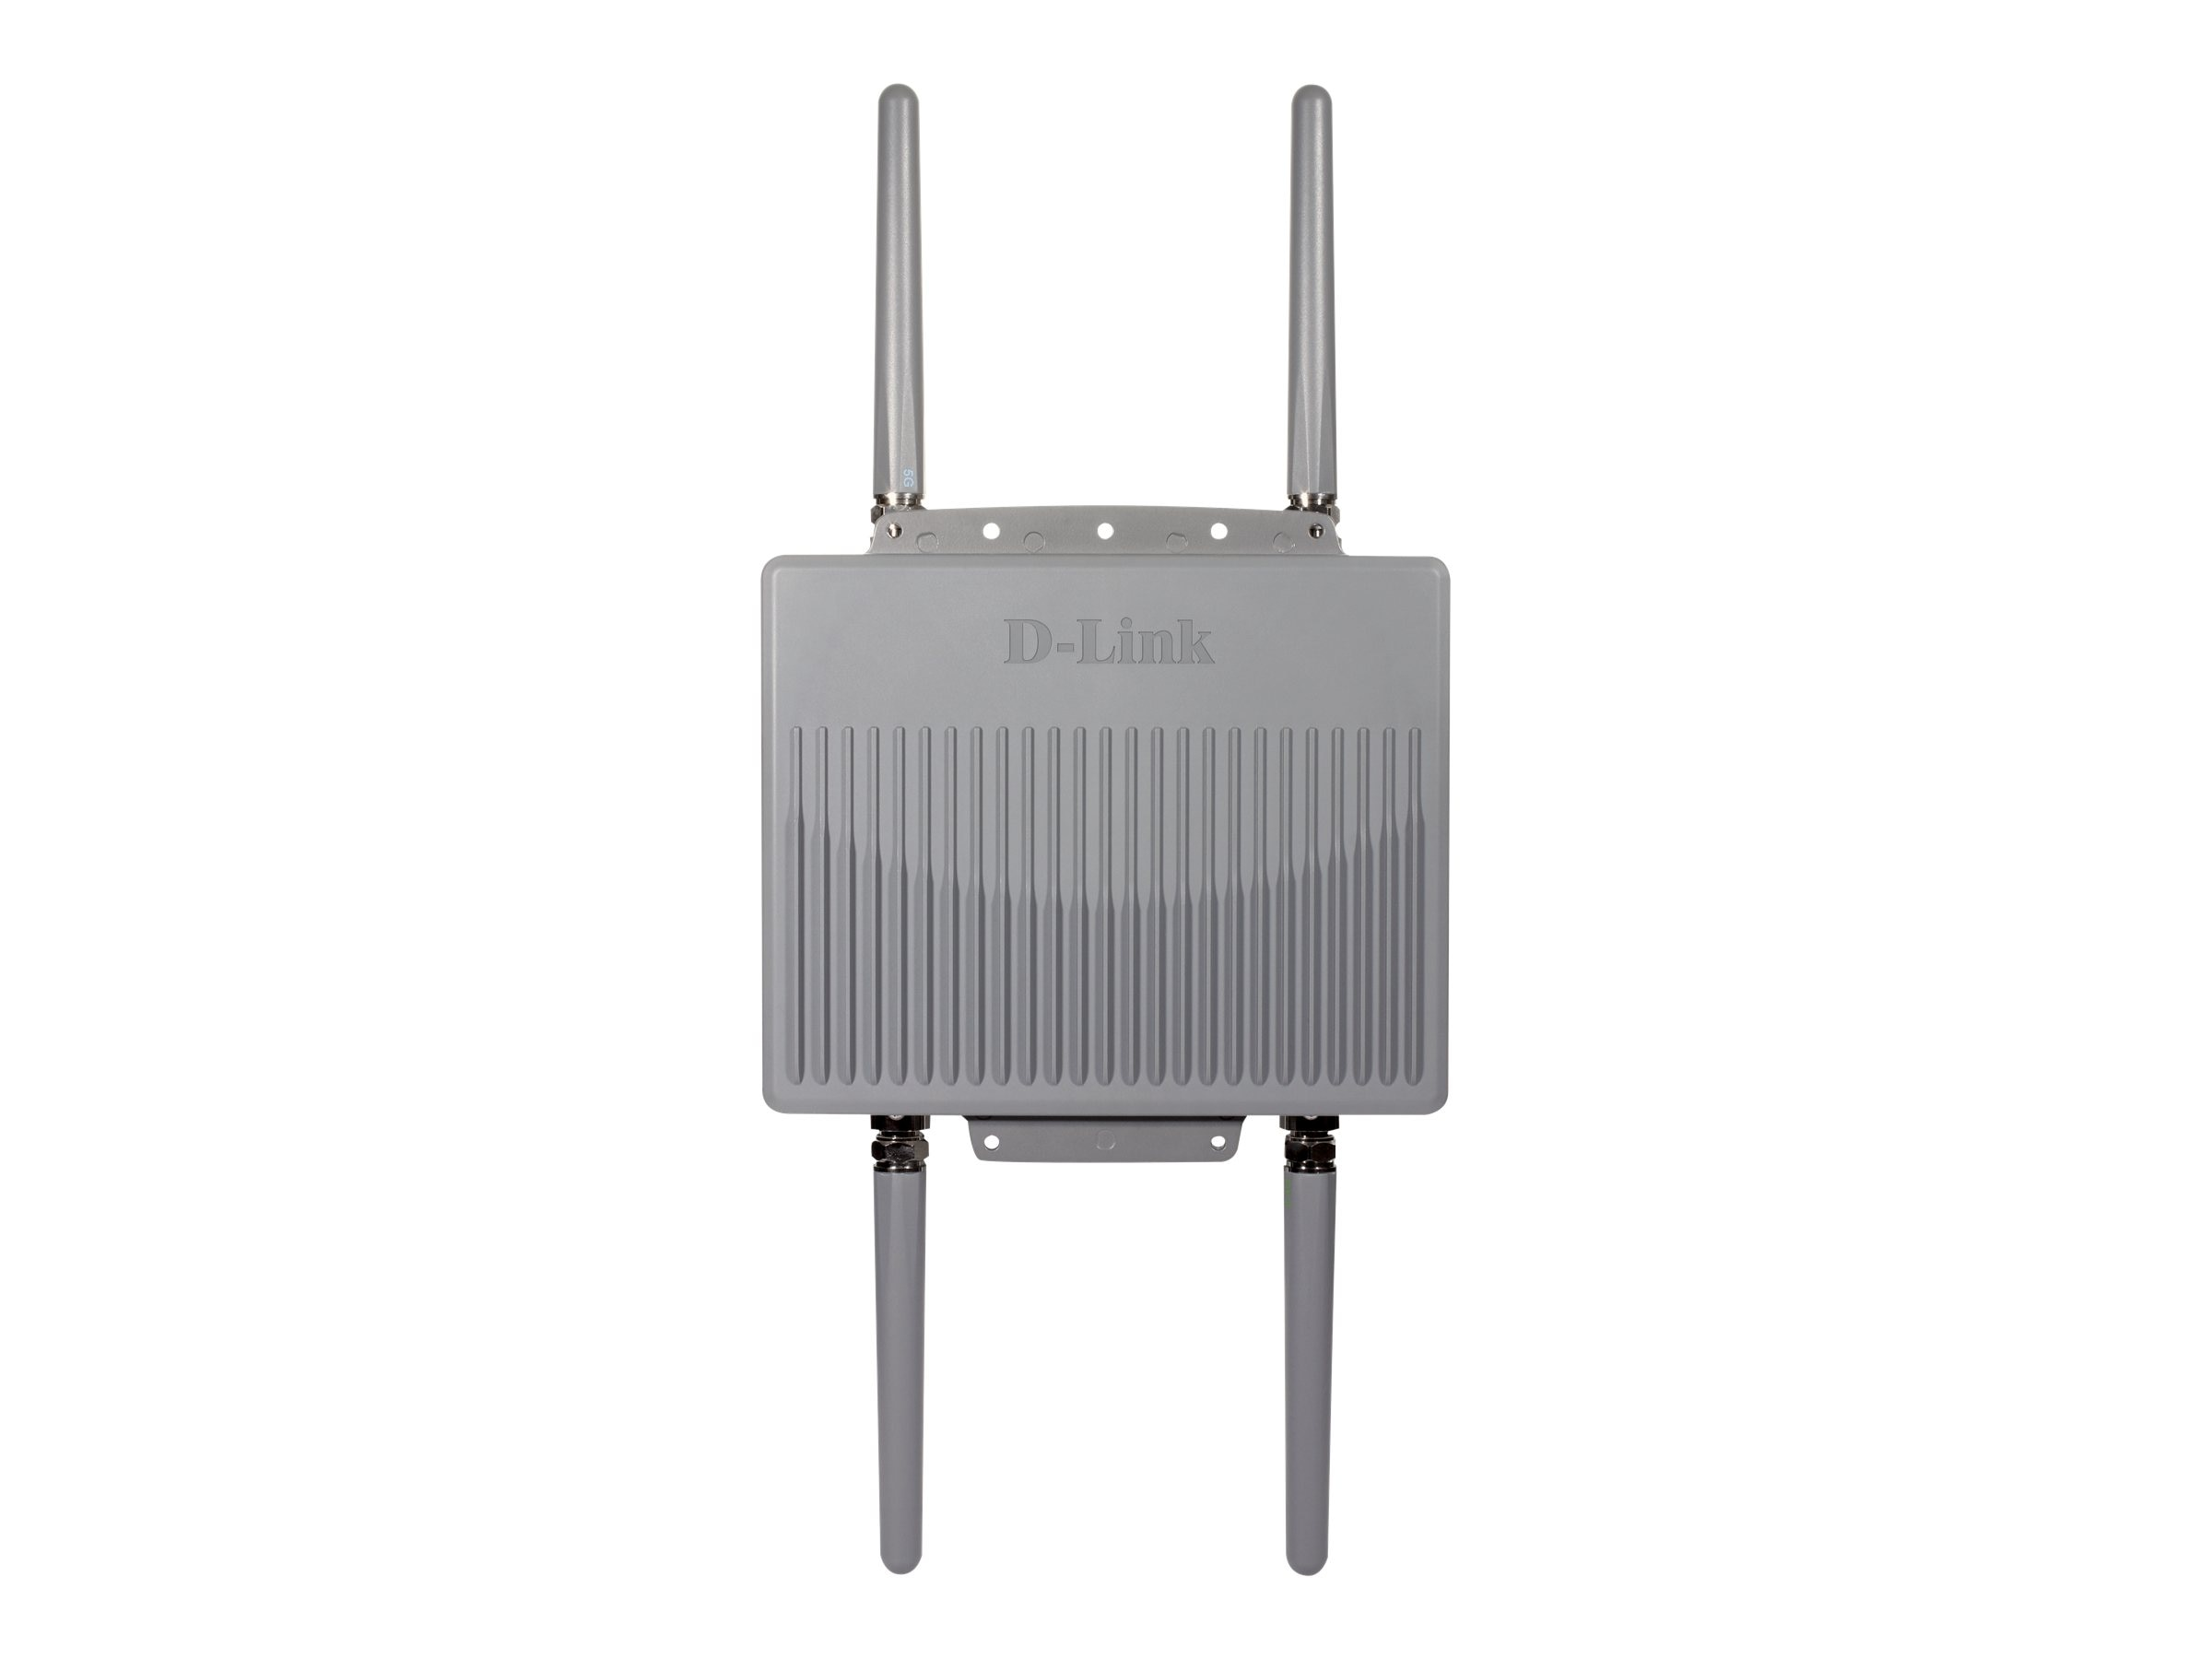 D-Link AirPremier N DB Outdoor PoE AP, DAP-3690, 13477810, Wireless Access Points & Bridges